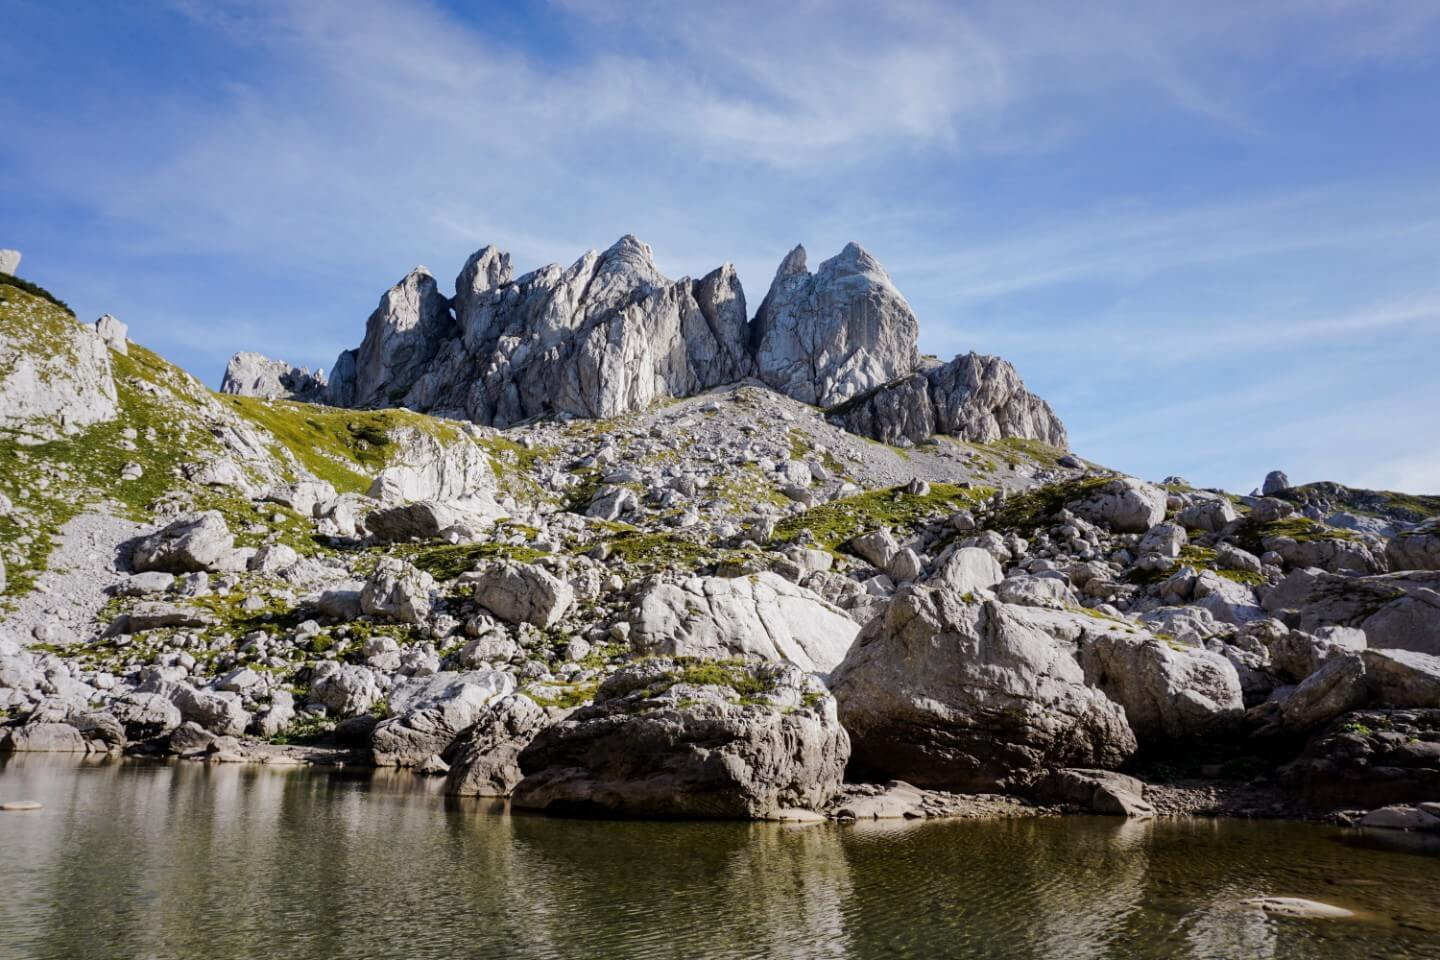 Durmitor National Park Hiking Trails